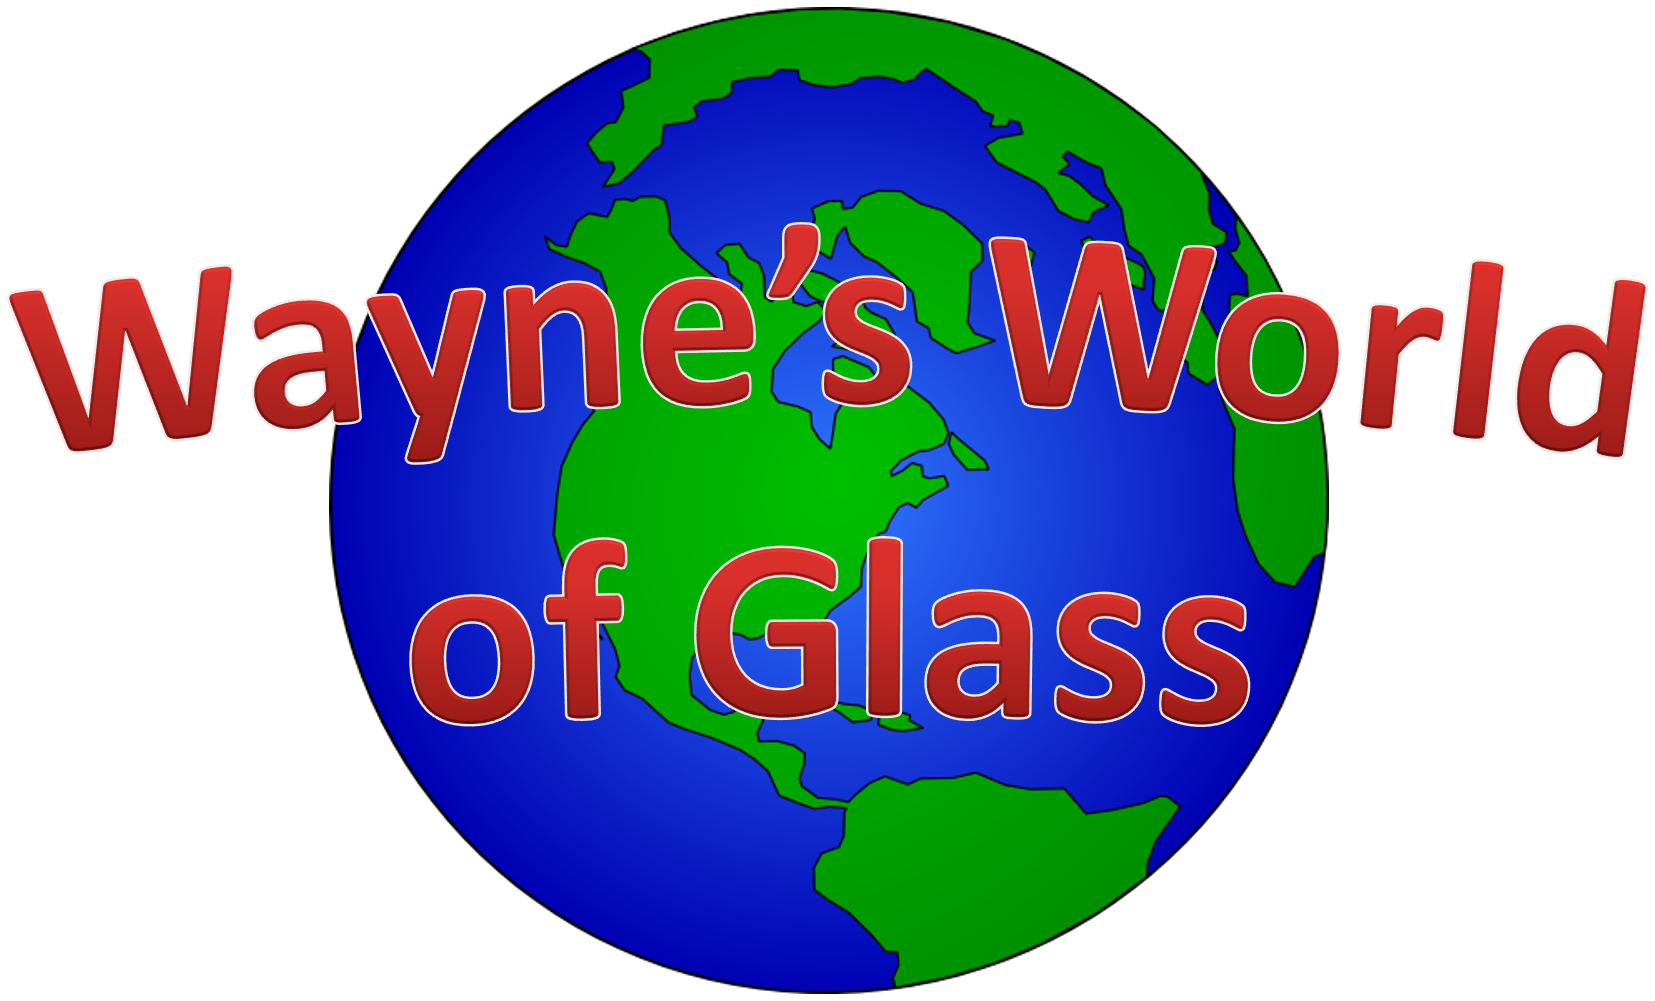 Wayne's World of Glass logo